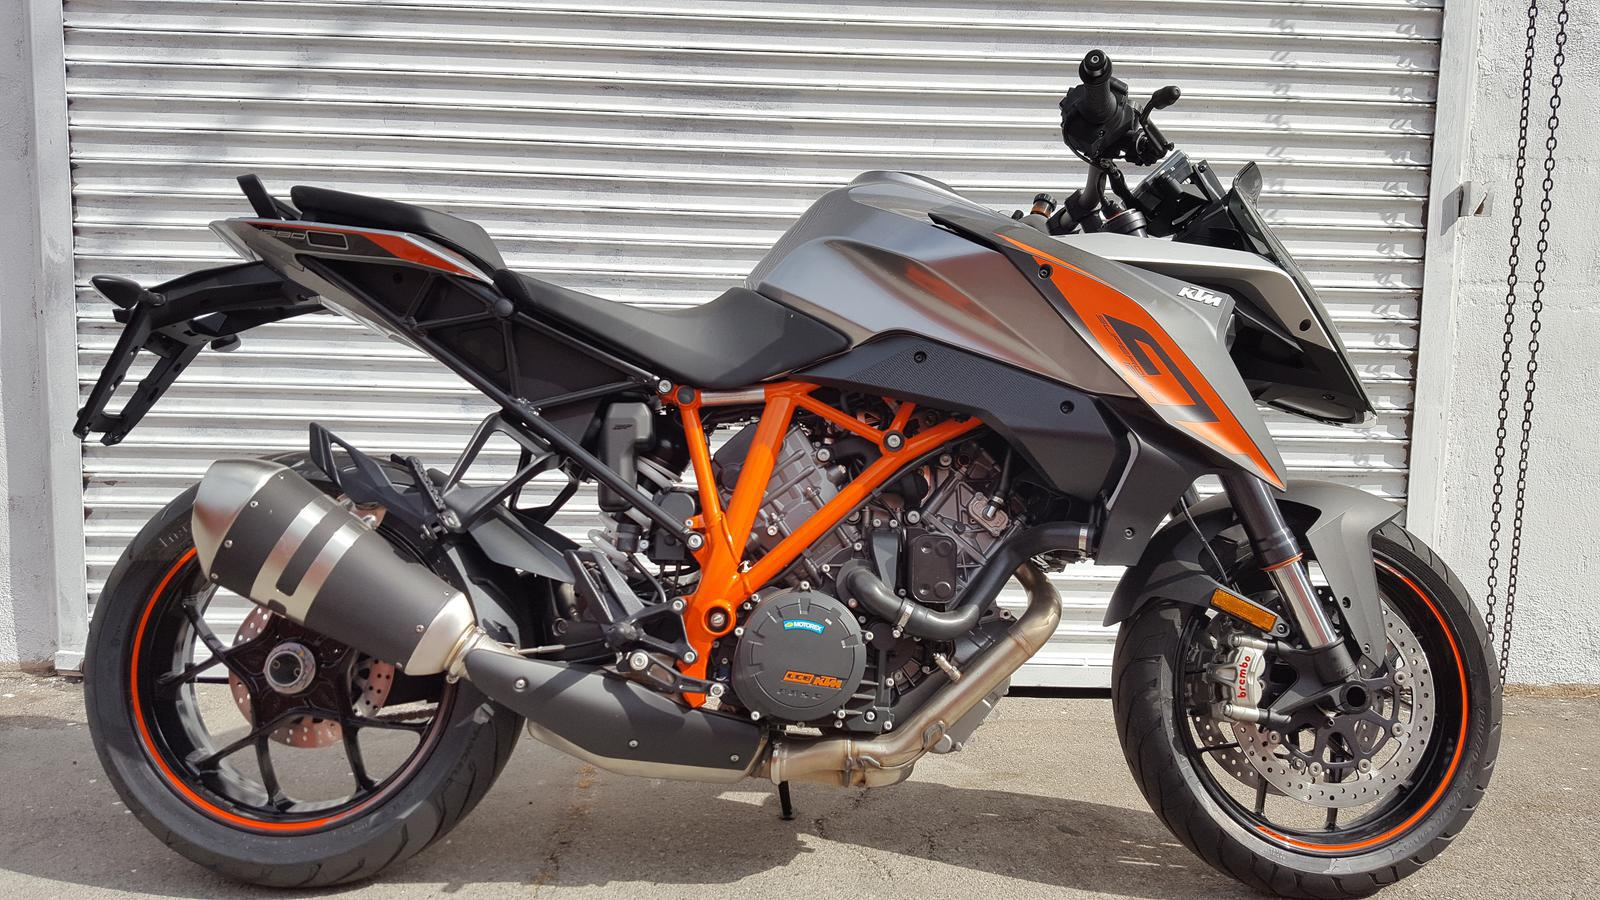 2017 ktm super duke gt for sale in los angeles, ca | beverly hills